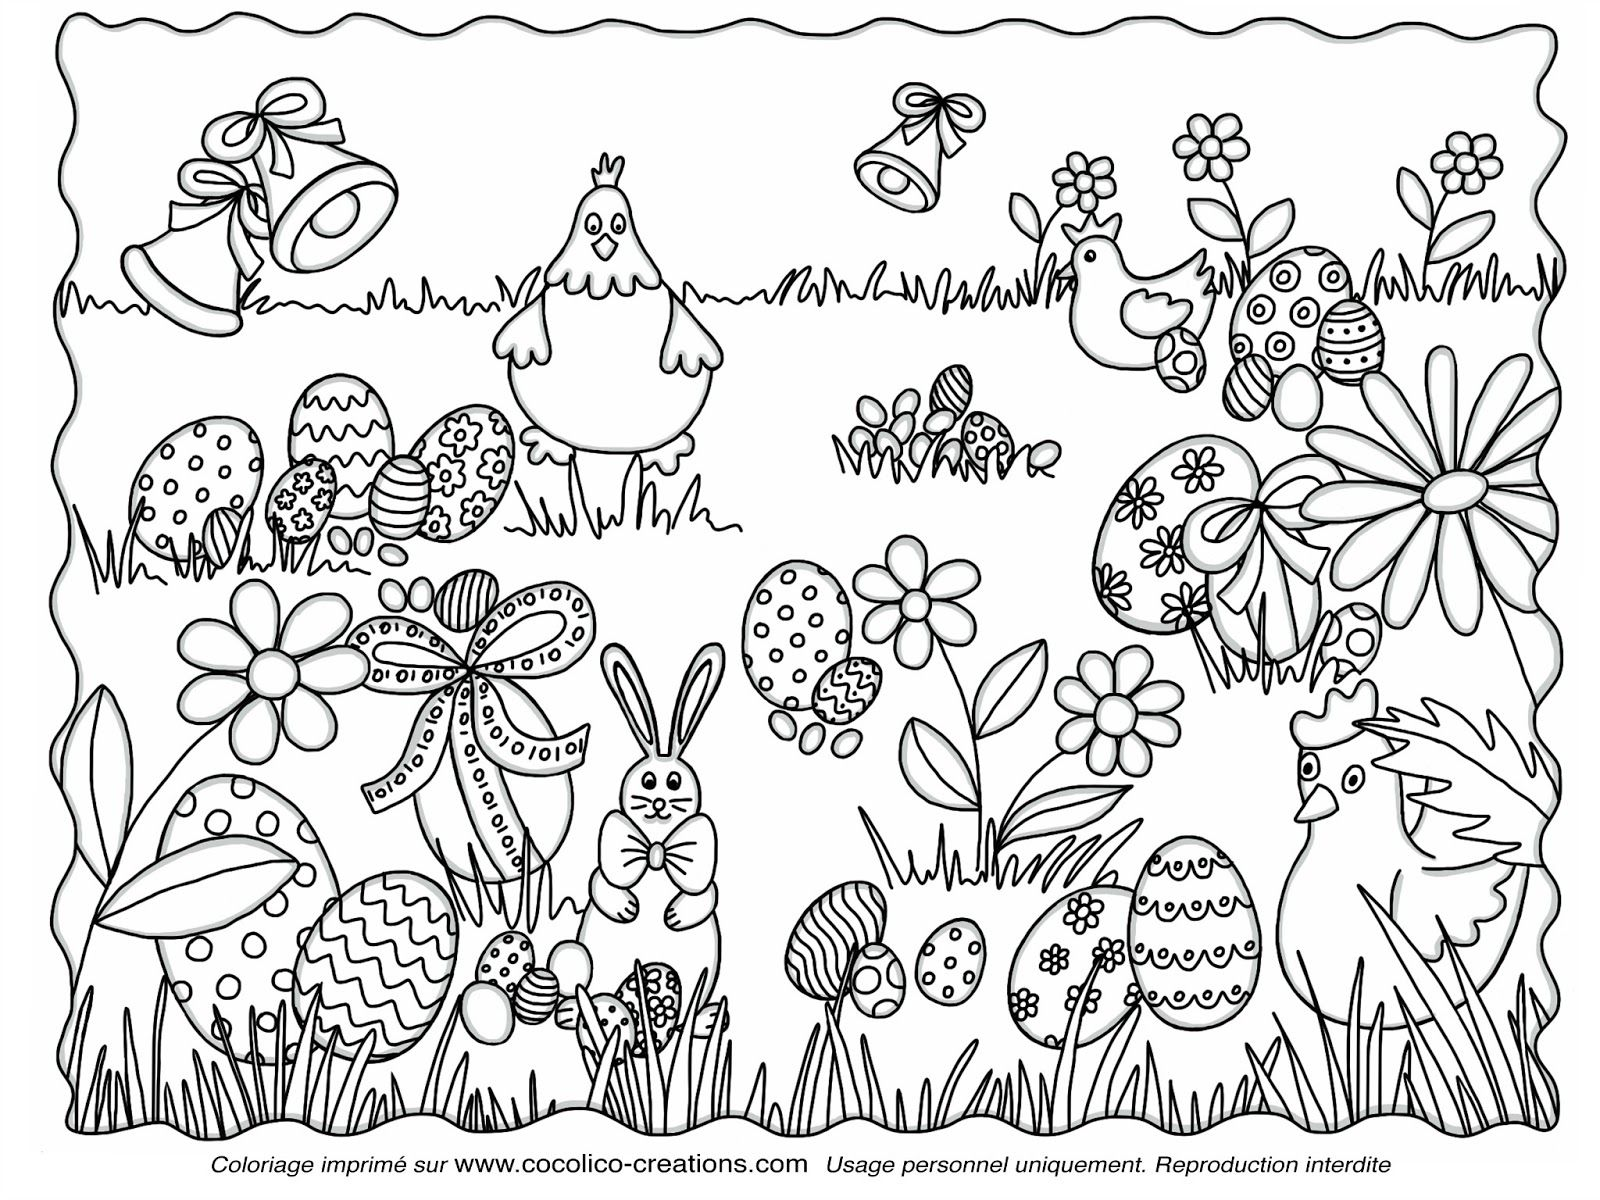 coloriage de paques imprimer gratuit les coloriages de p ques poule lapin et oeufs de. Black Bedroom Furniture Sets. Home Design Ideas